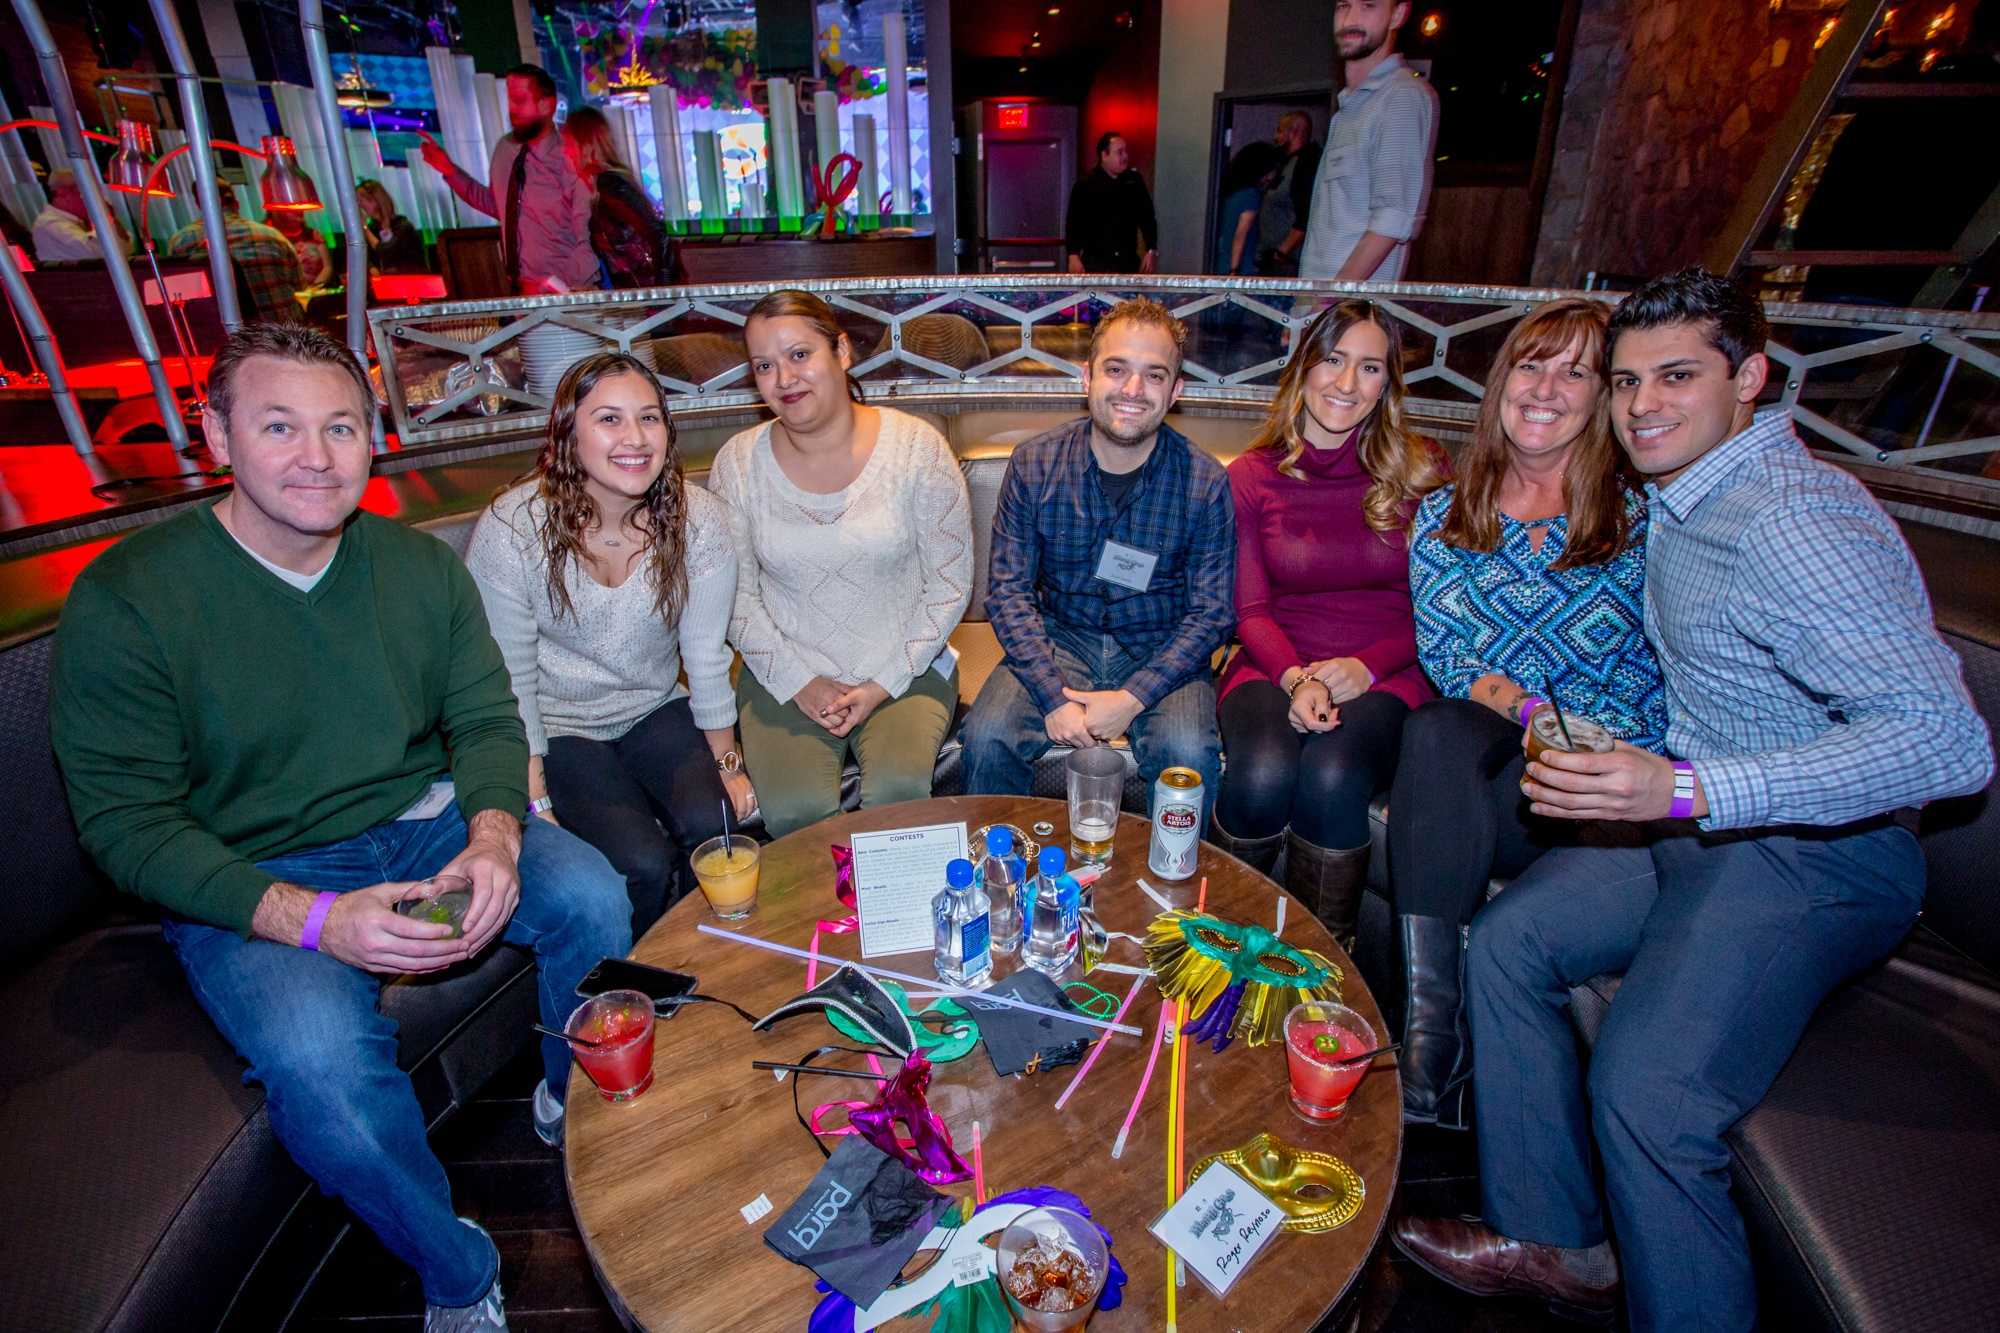 arrowhead_holiday_party-90.jpg